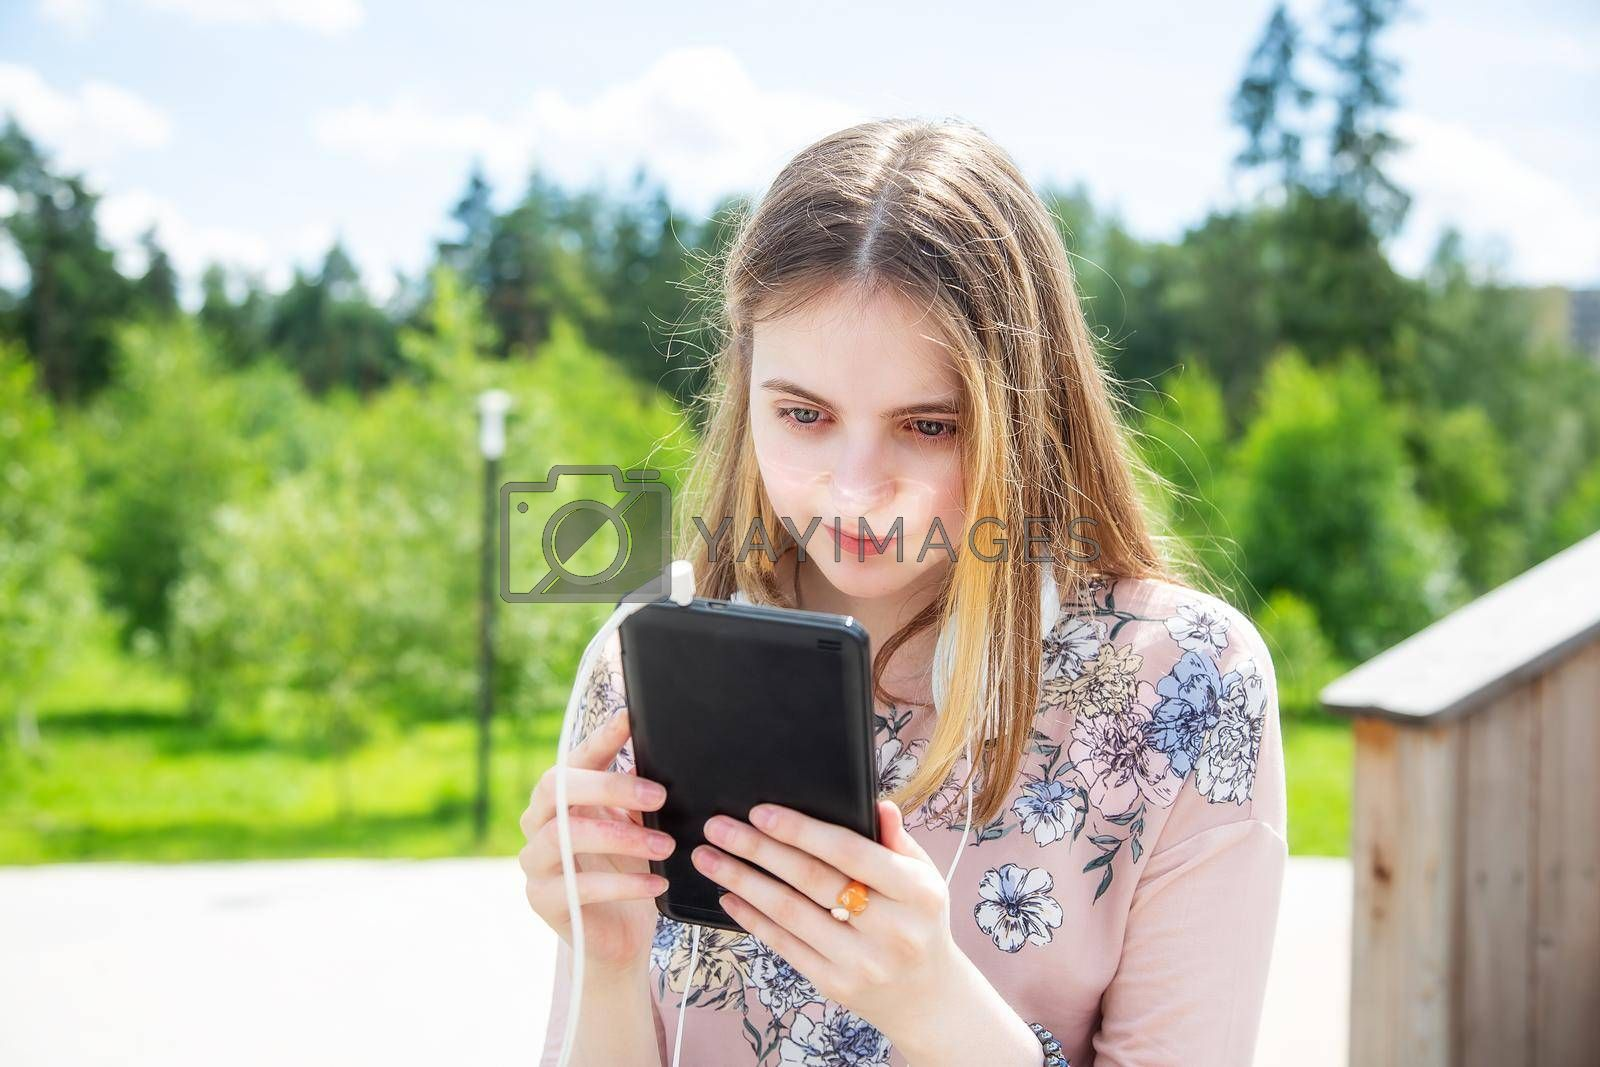 A young girl 20 years old Caucasian appearance looks into her mobile phone, writes a text message while sitting on a wooden podium in the park on a summer day.The girl is dressed in a floral T-shirt